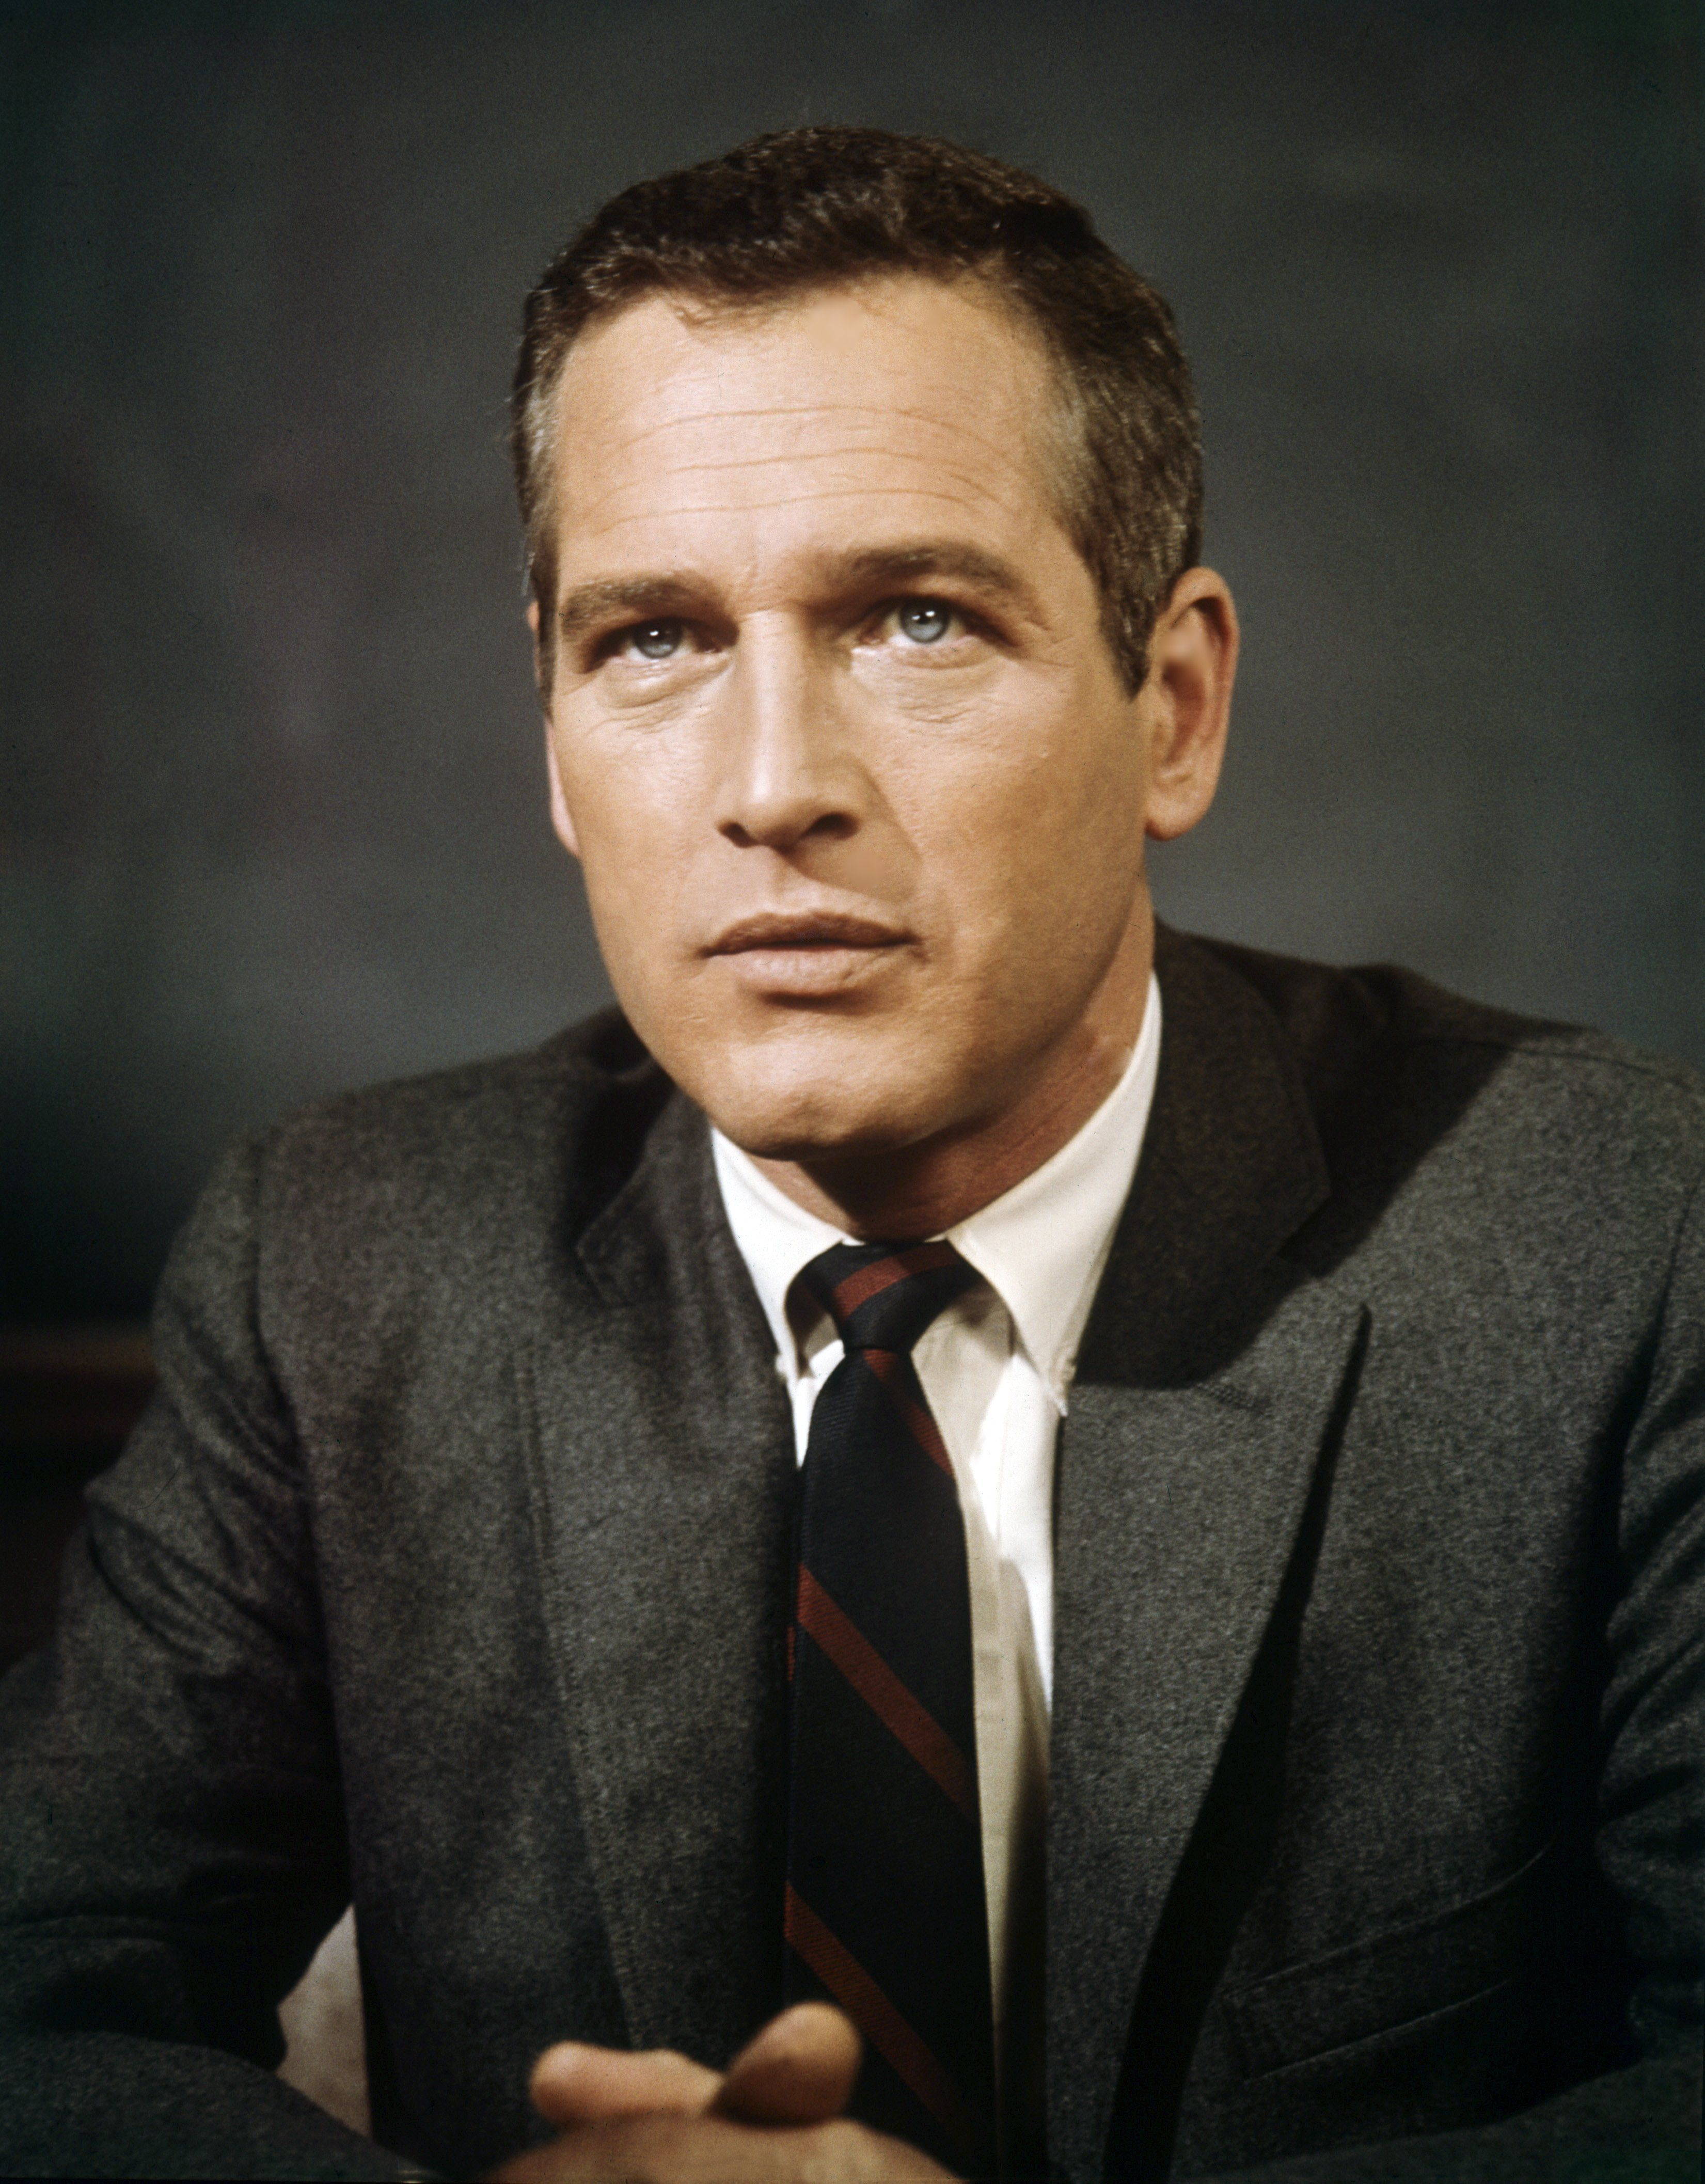 ACTOR POSTER Blue Eyes Paul Newman from Hud